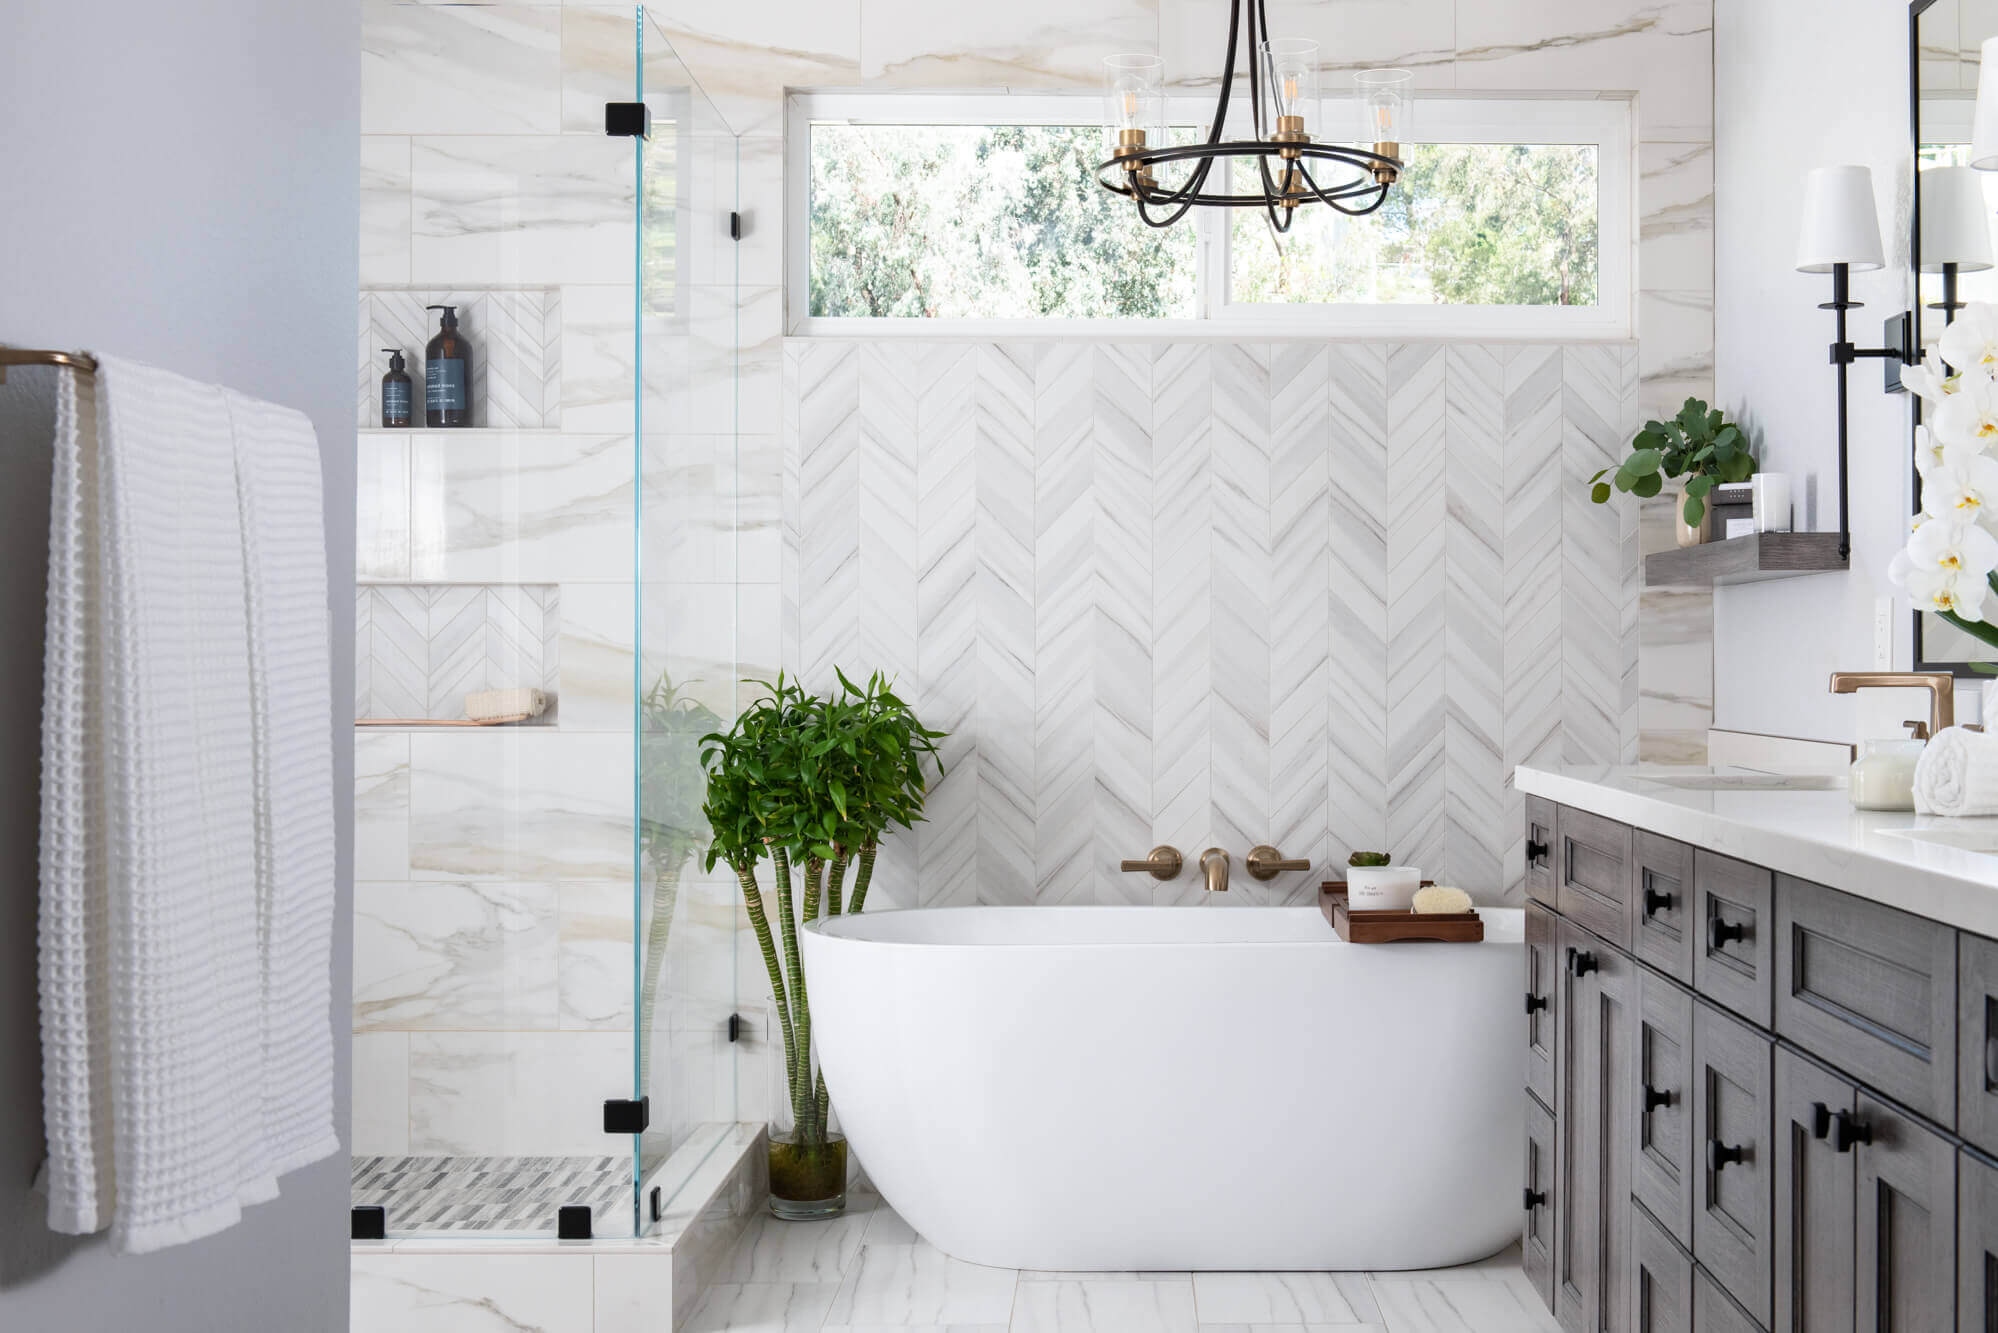 athroom with white tub, glass shower, black and white tiled floor